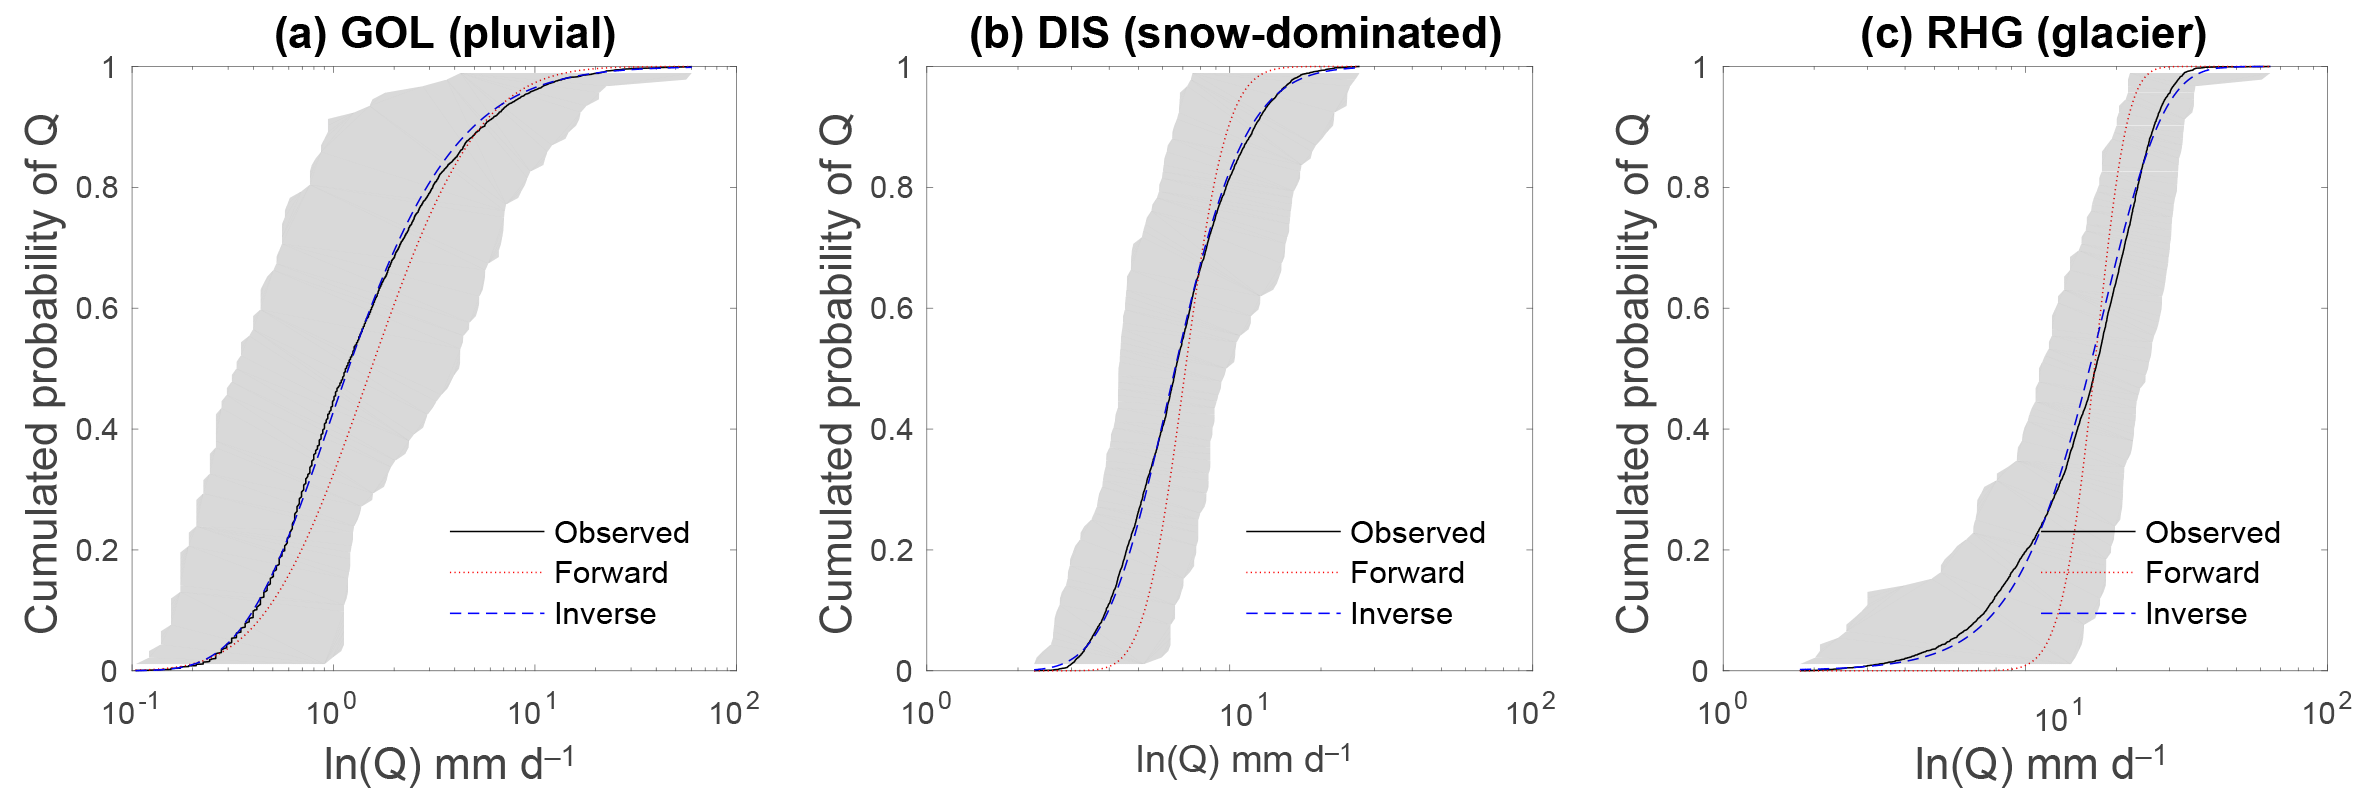 HESS - Analytical flow duration curves for summer streamflow